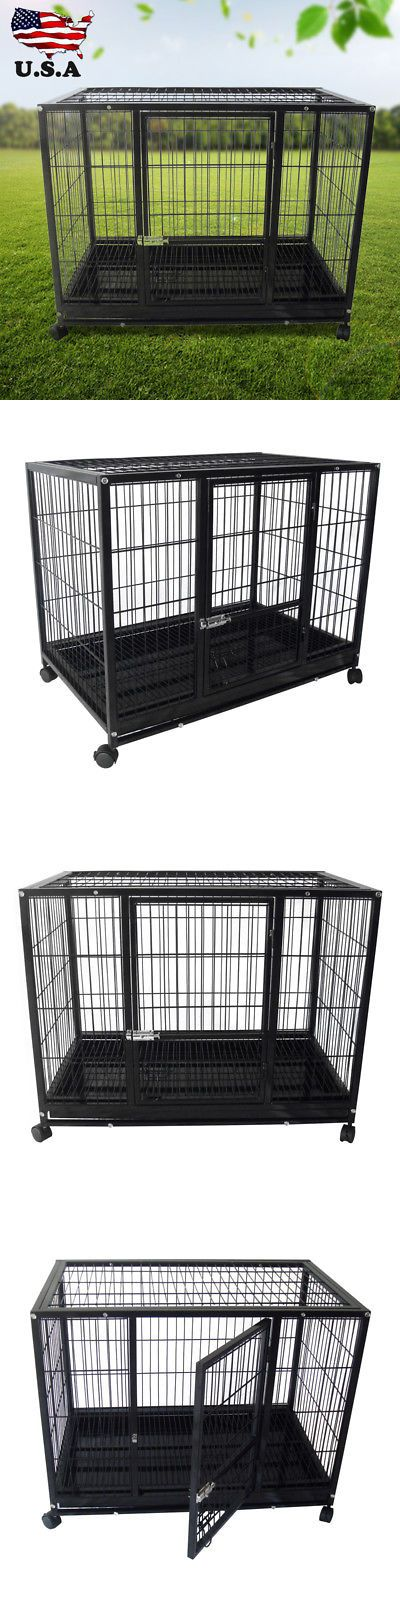 Other Pet Supplies 301: Xl 37 Heavy Duty Rolling Dog Crate Kennel Pet Cage House W Castor And Tray -> BUY IT NOW ONLY: $88.9 on eBay!